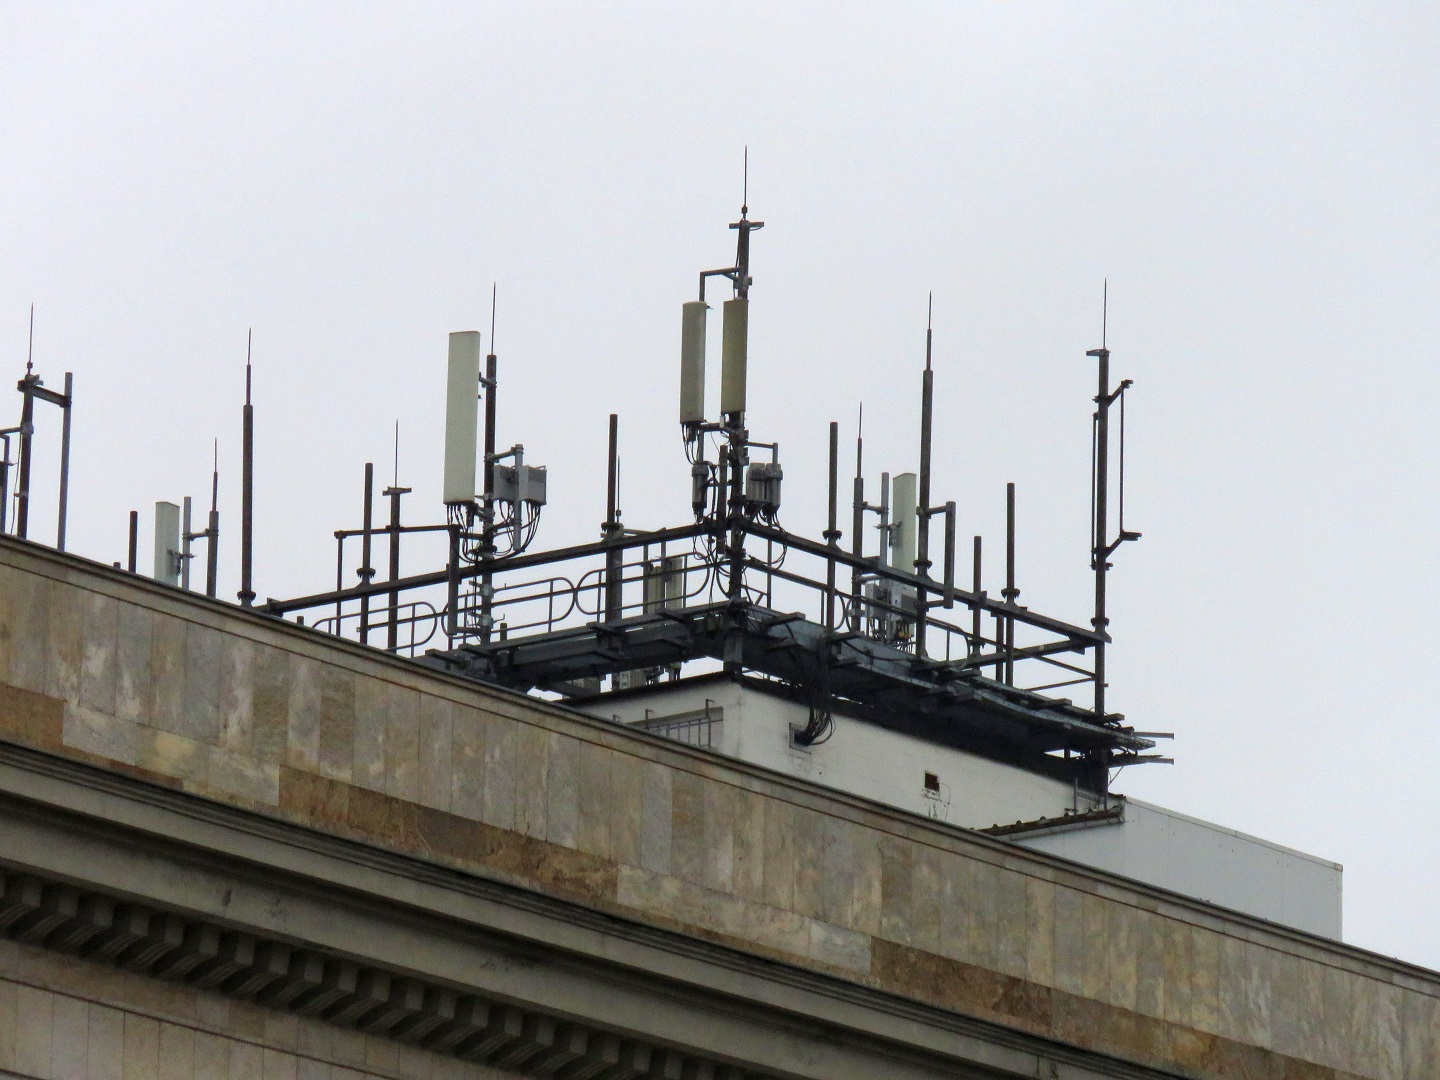 Orange and T-Mobile 4CA site with Huawei, Powerwave, Kathrein antennas and Huawei RRUs.